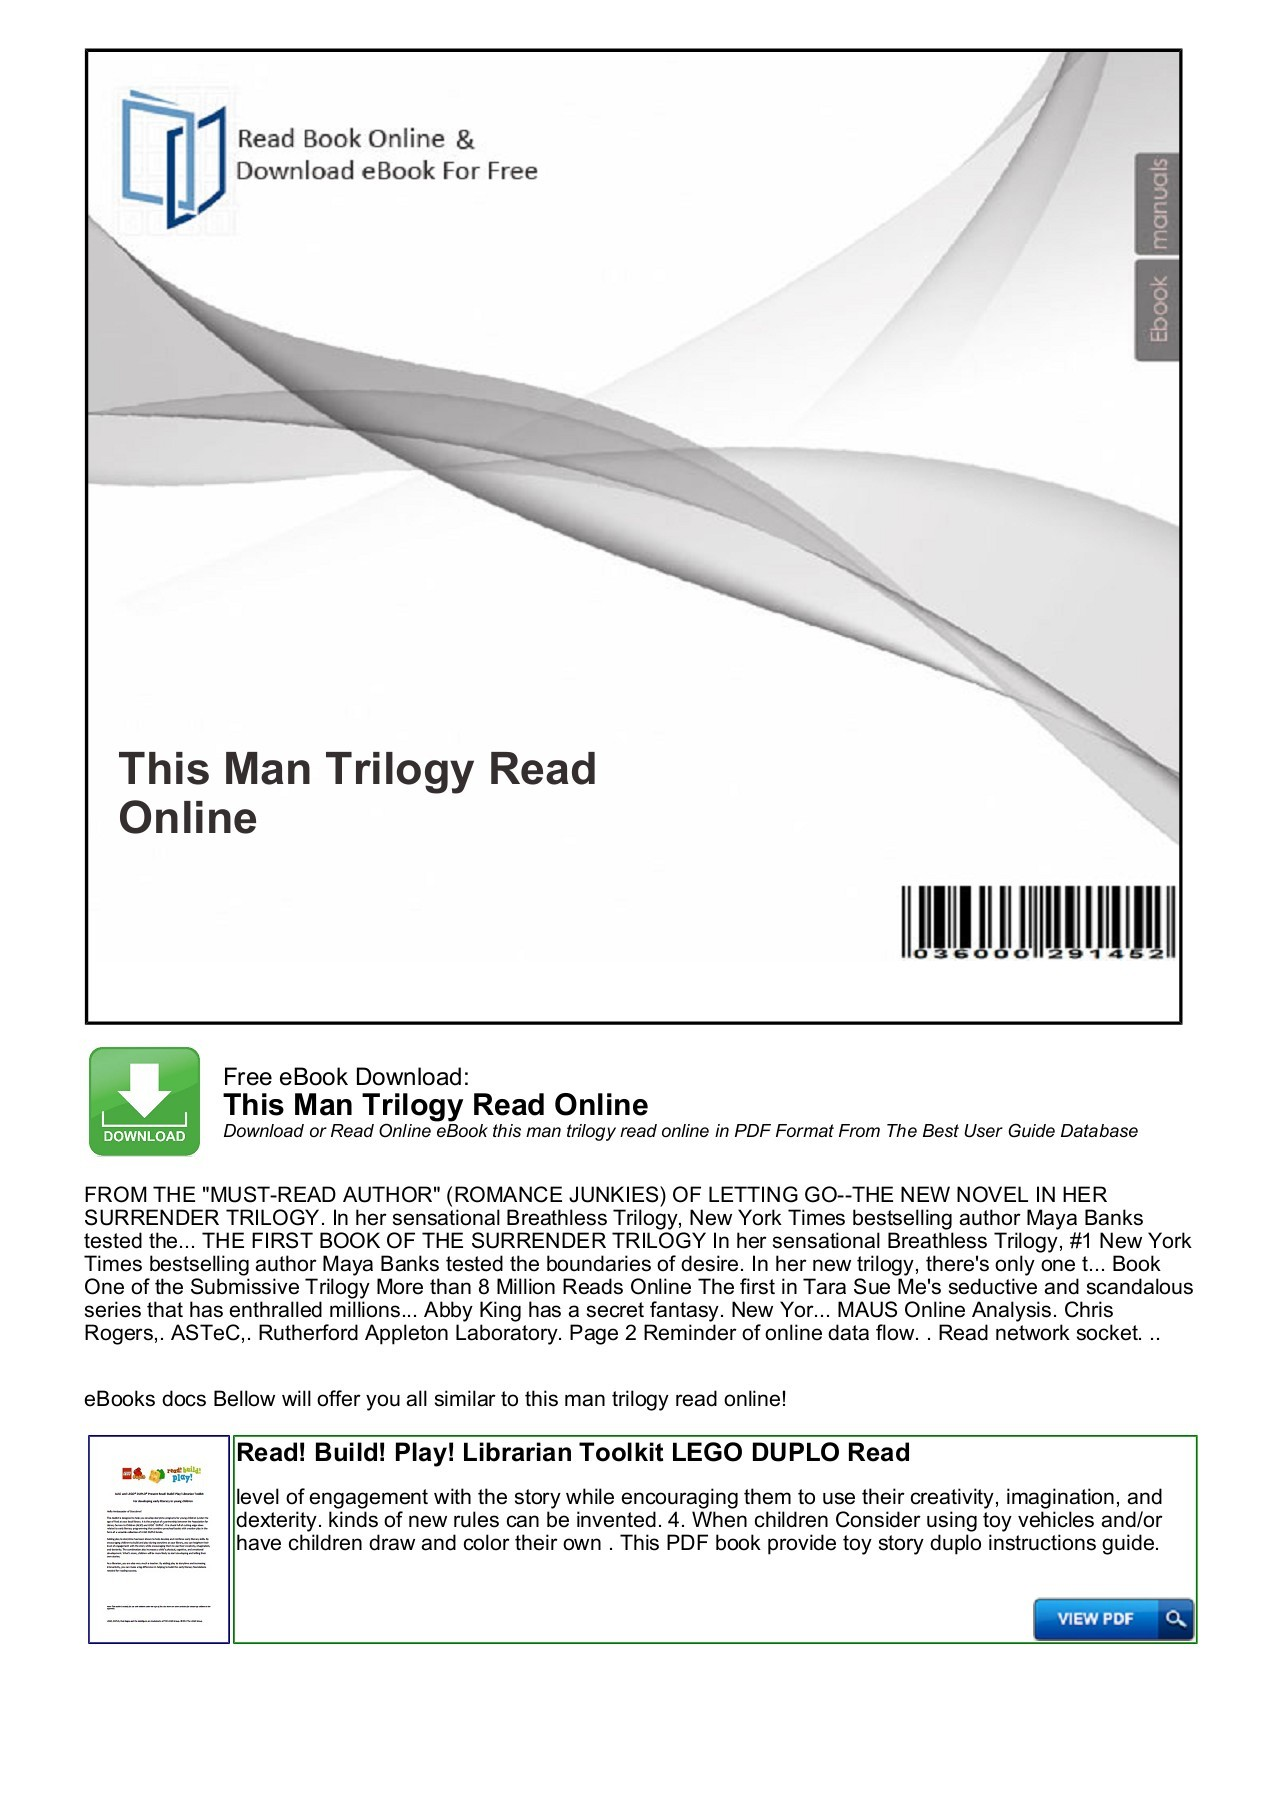 Read The Book Online This Man Trilogy Read Online Productmanualguide Fliphtml5